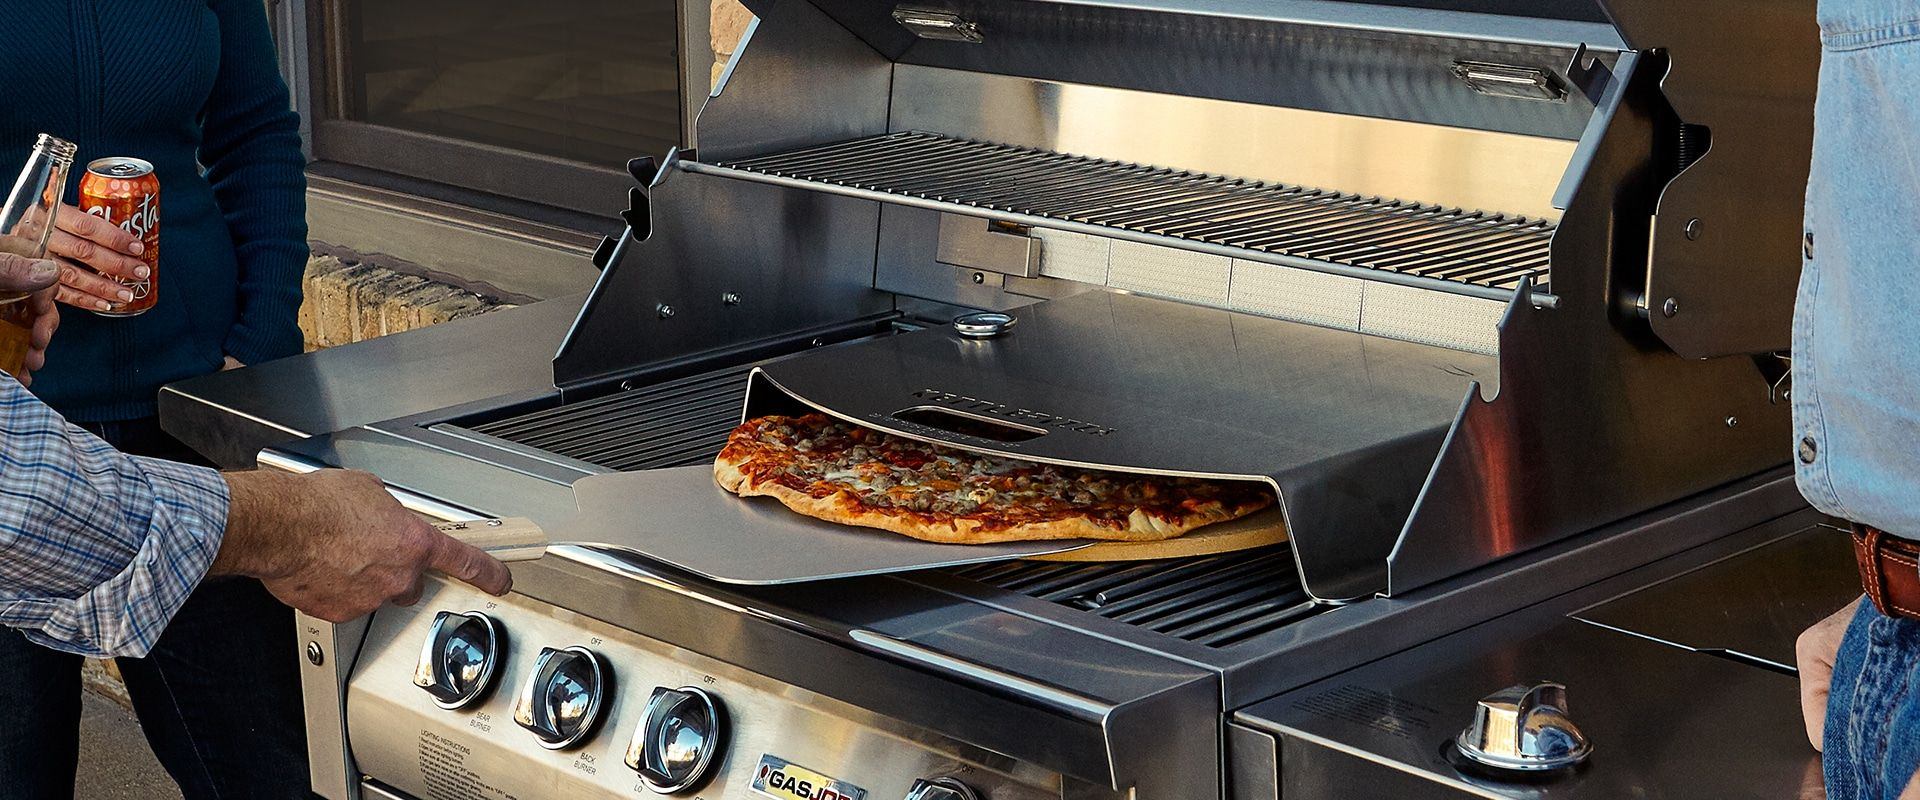 Gas Grills Kettlepizza Gas Pro Oven Inserts Let You Make Great Pizza Oven Quality Pizzas At Home On Your Gas Gr Oven Outdoor Pizza Oven Kits Pizza Oven Kits